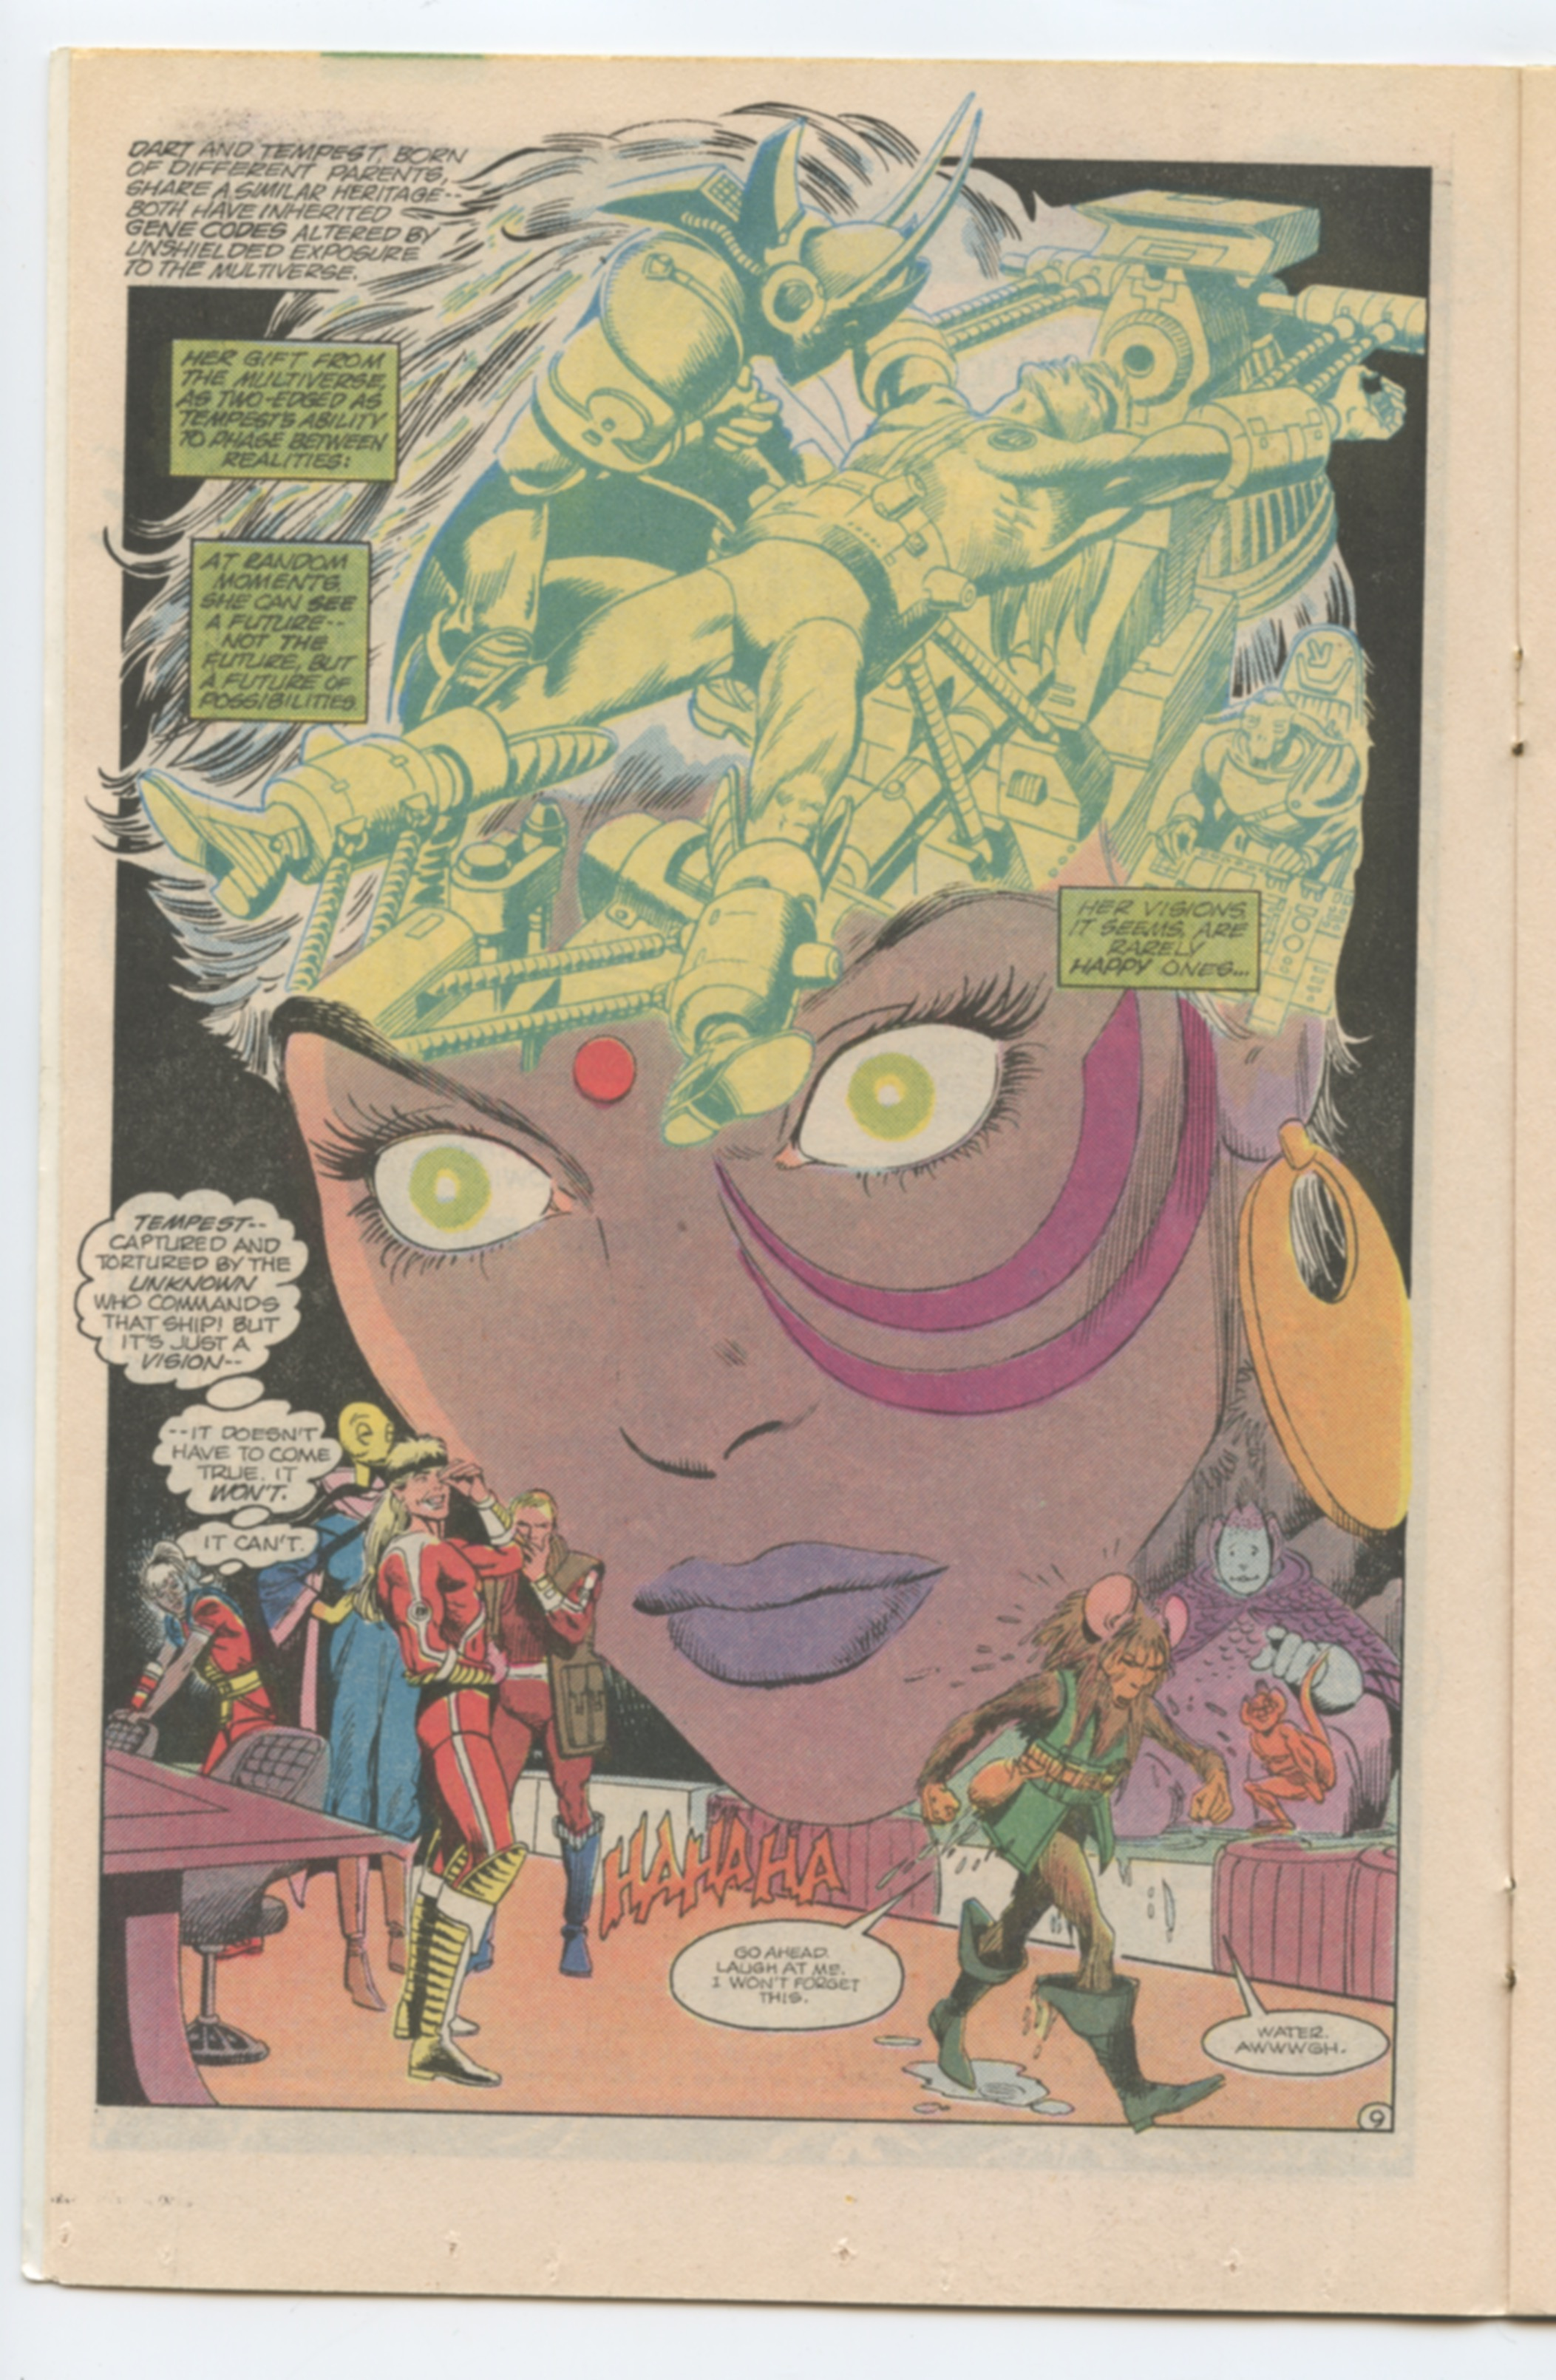 An image of a comic book page, circa 1970s. The page shows the large purple face of a woman leaning out over several smaller figures. The top portion of the woman's head is a blue and yellow drawing of a superhero suspended by machinery as if for surgery.